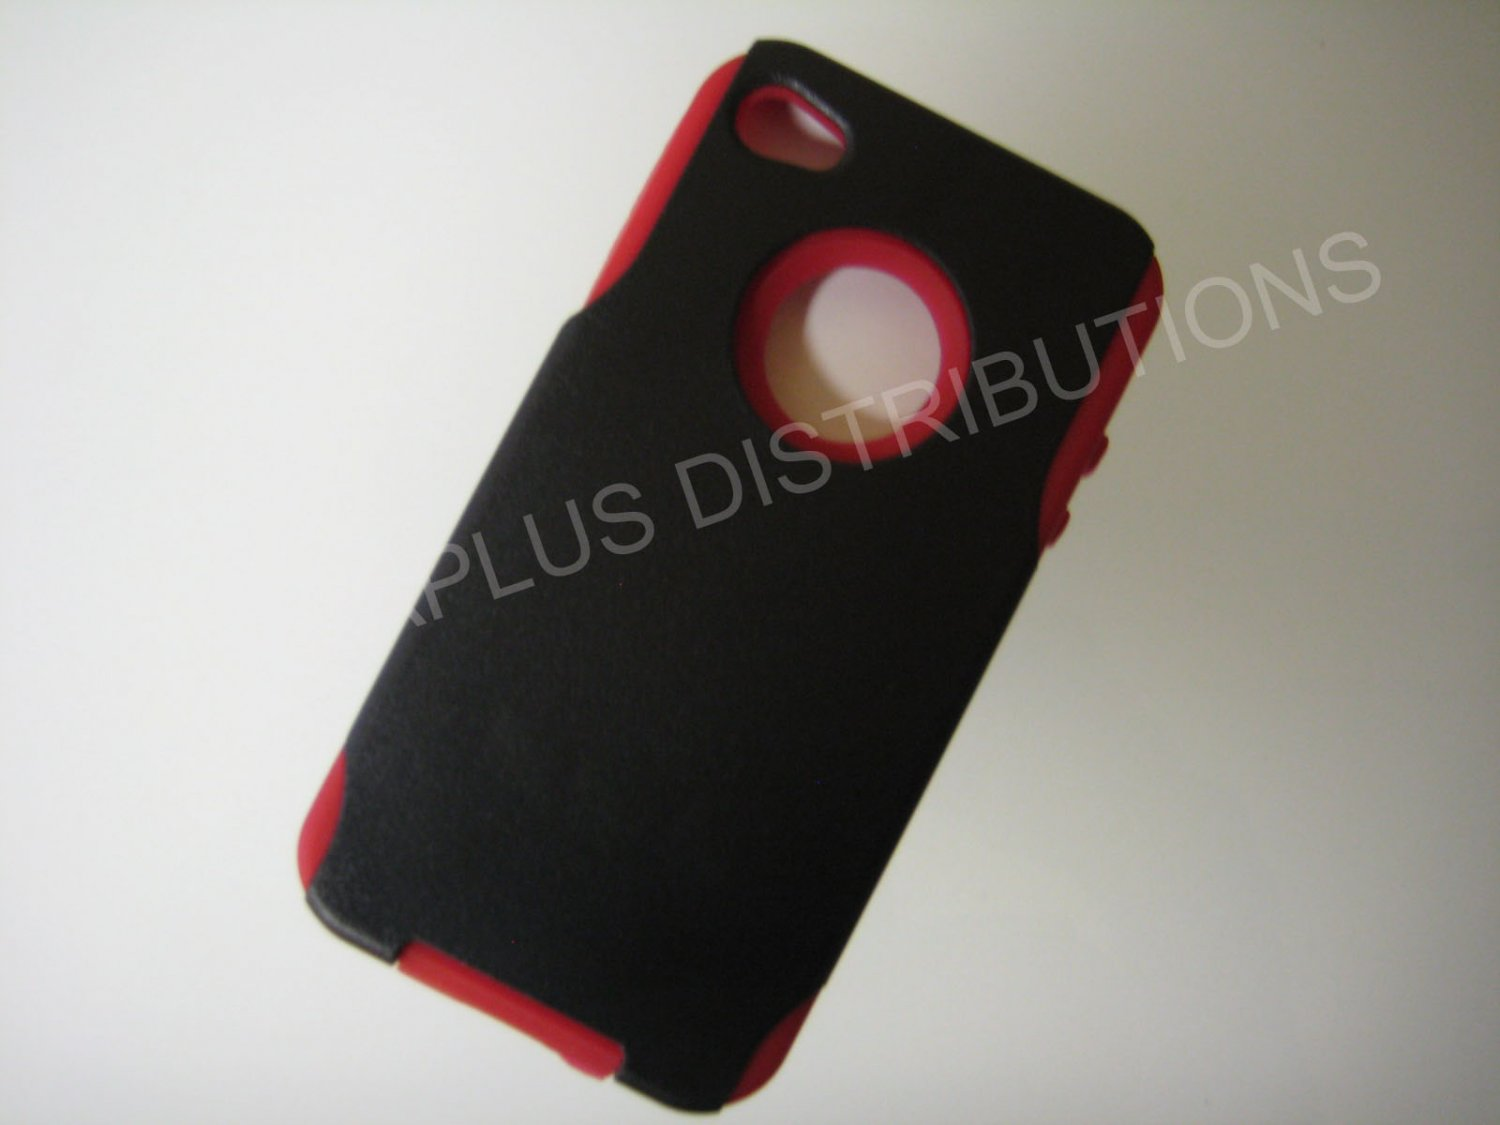 New Red Hard And Soft Design Hard Protective Cover For iPhone 4 - (0158)